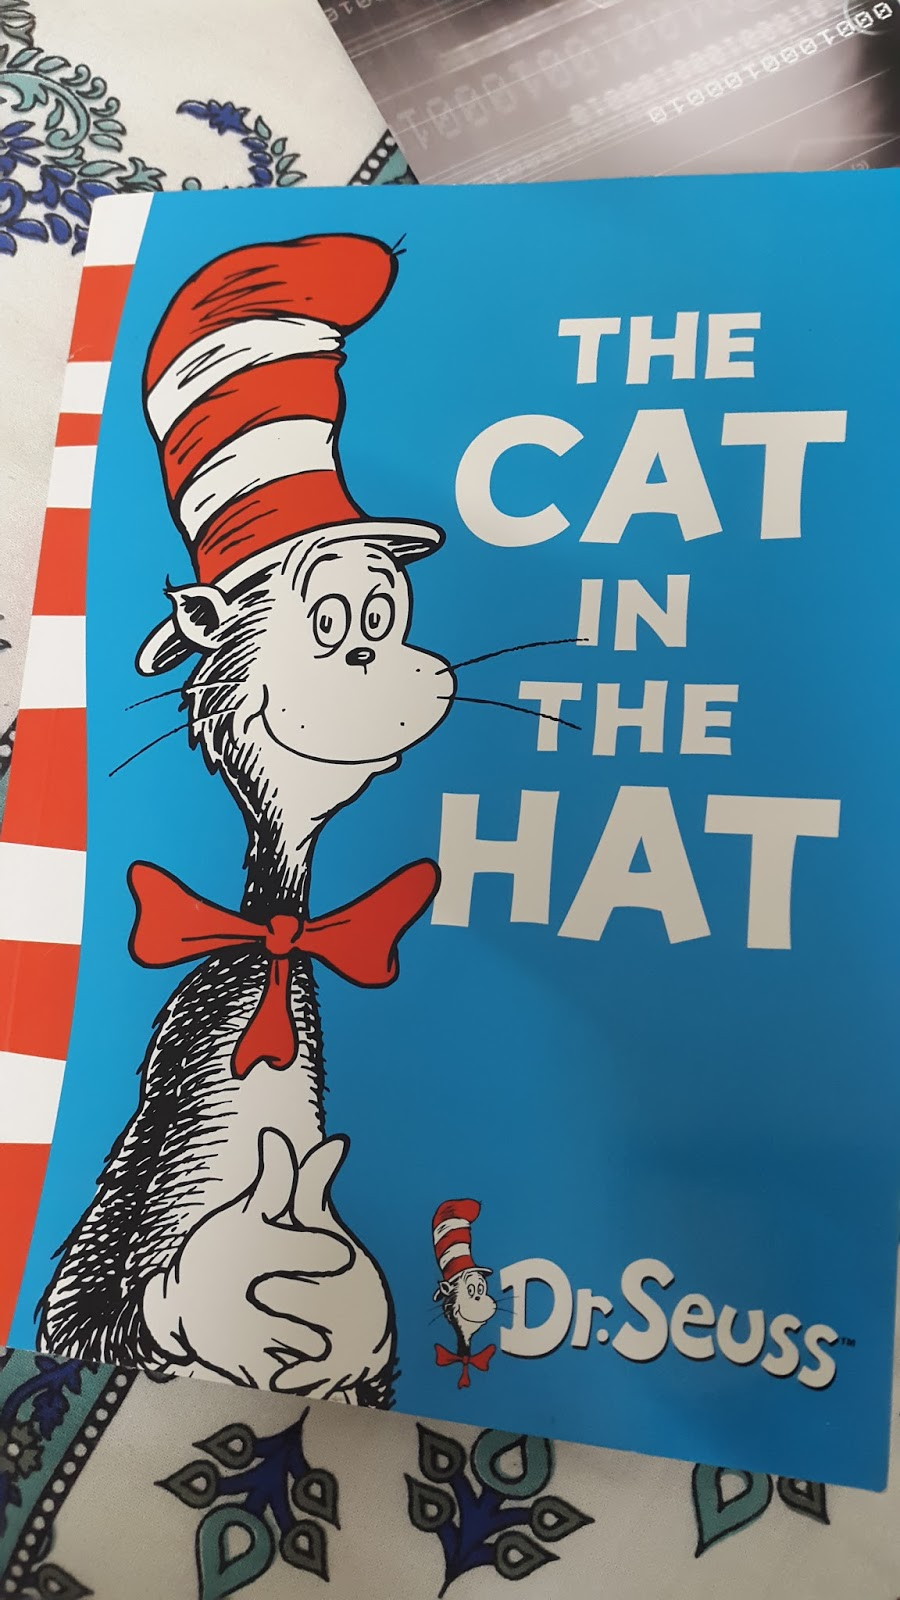 an analysis of dr seuss the cat in the hat Is dr seuss rolling in his grave yet much of the film is padded out by the comic business of mike myers' cat, in a deeply flawed role falling somewhere between a stand-up dying on stage or an alcoholic clown harassing kids at a birthday party.